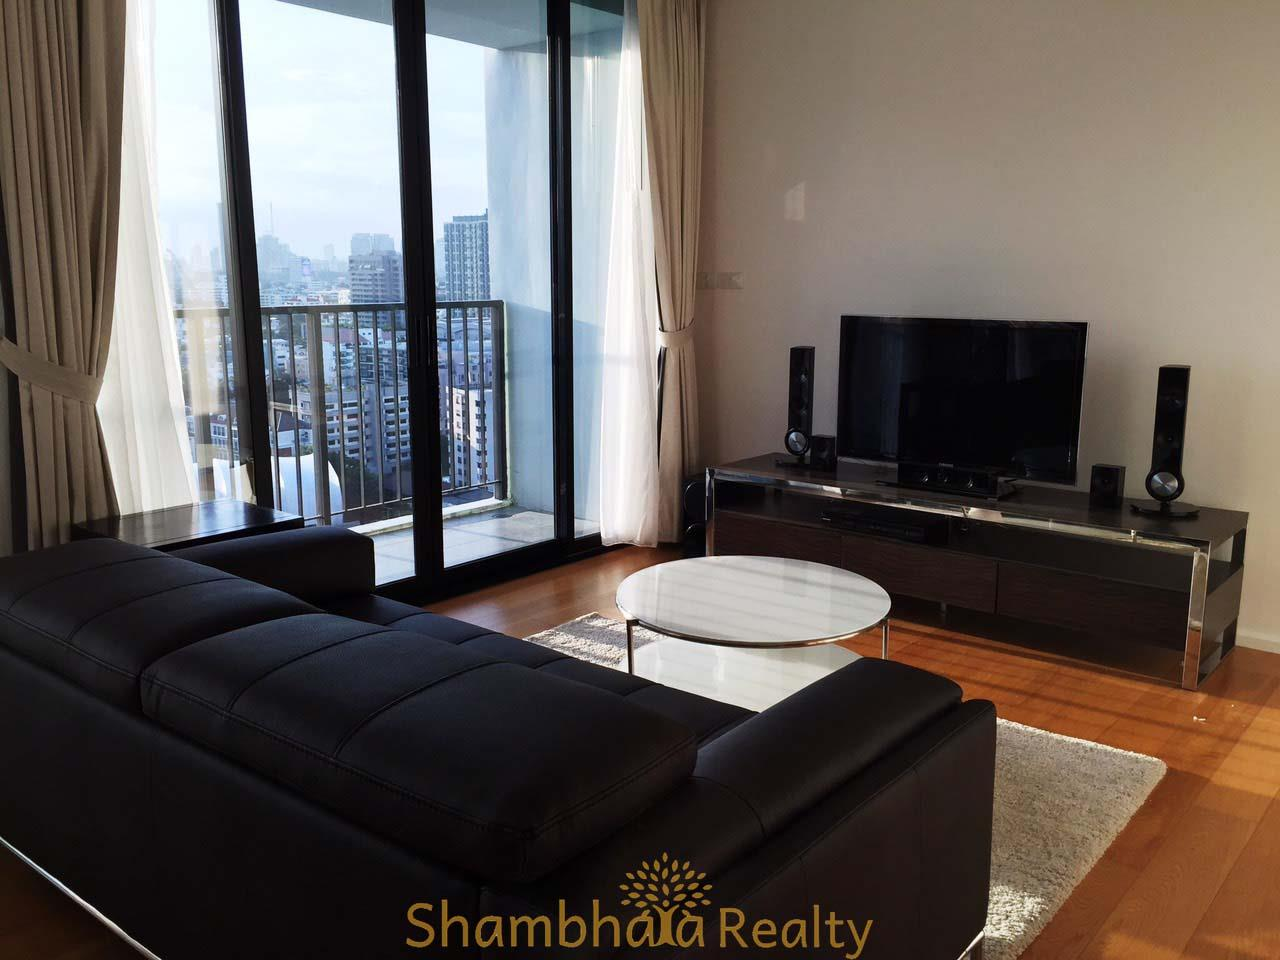 Shambhala Realty Agency's The Alcove Thonglor 10 Condominium for Sale/Rent in Sukhumvit 55 ( Thonglor 10 ) 4